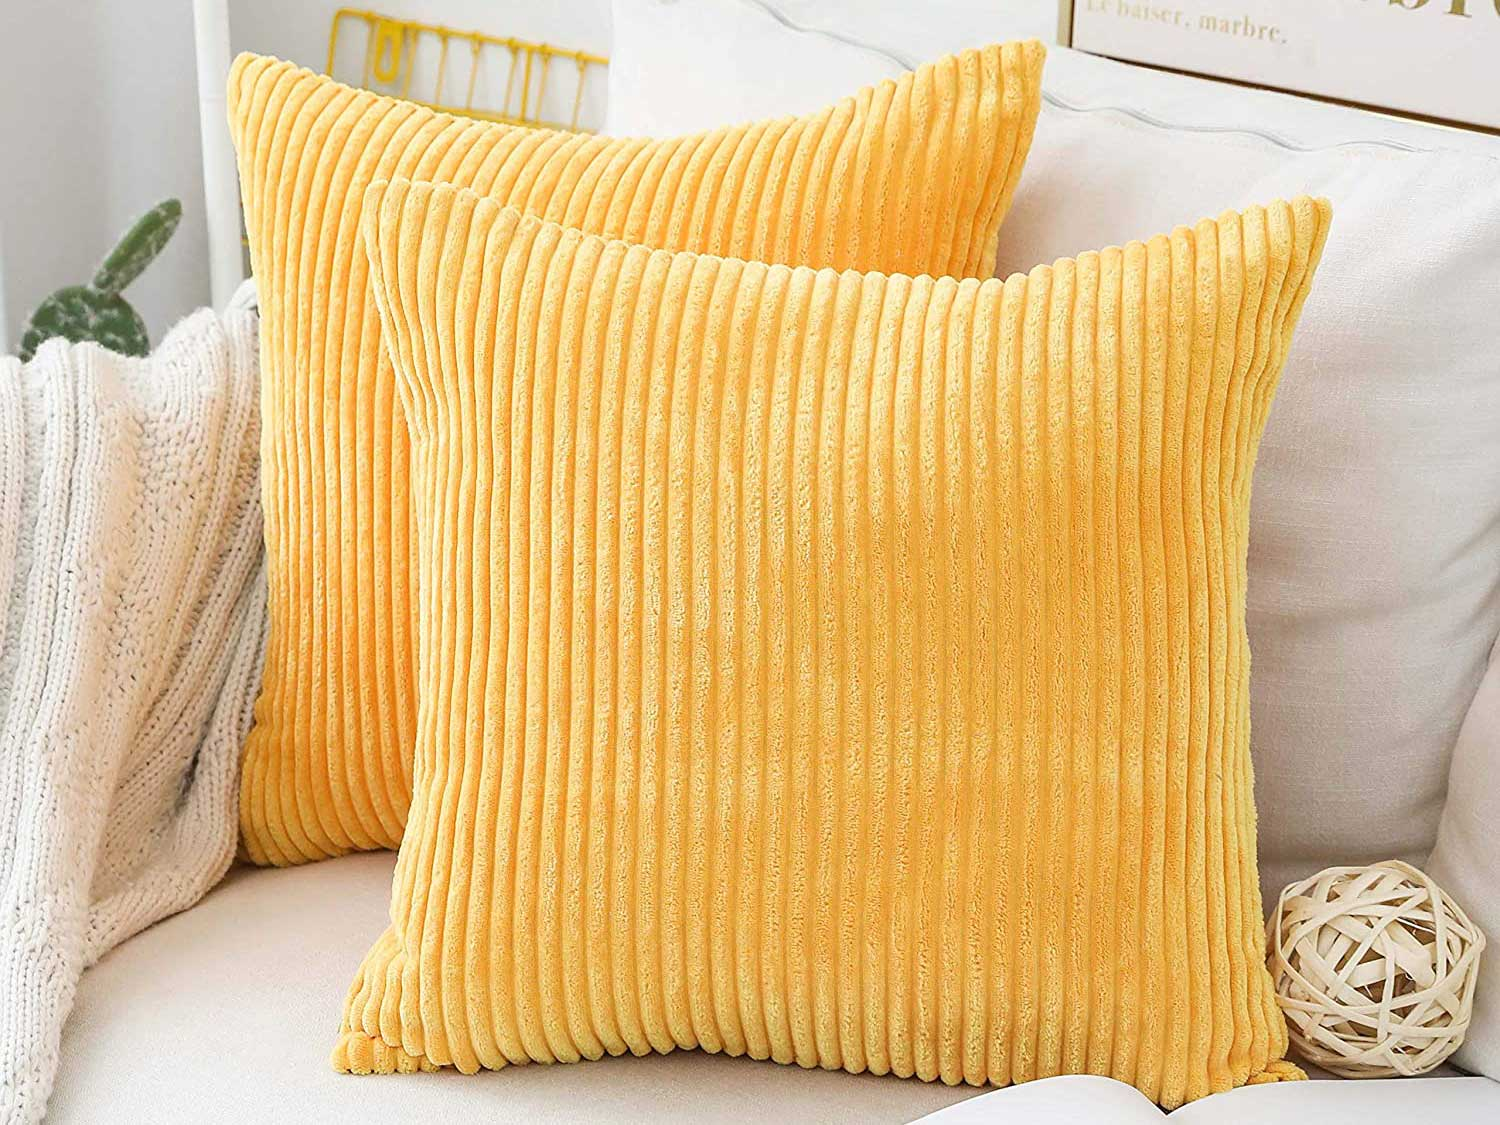 Home Brilliant Throw Pillow Covers Decorative Striped Velvet Square Mustard Throw Pillows for Couch Sofa Set of 2, 18x18 inch (45cm), Sunflower Yellow